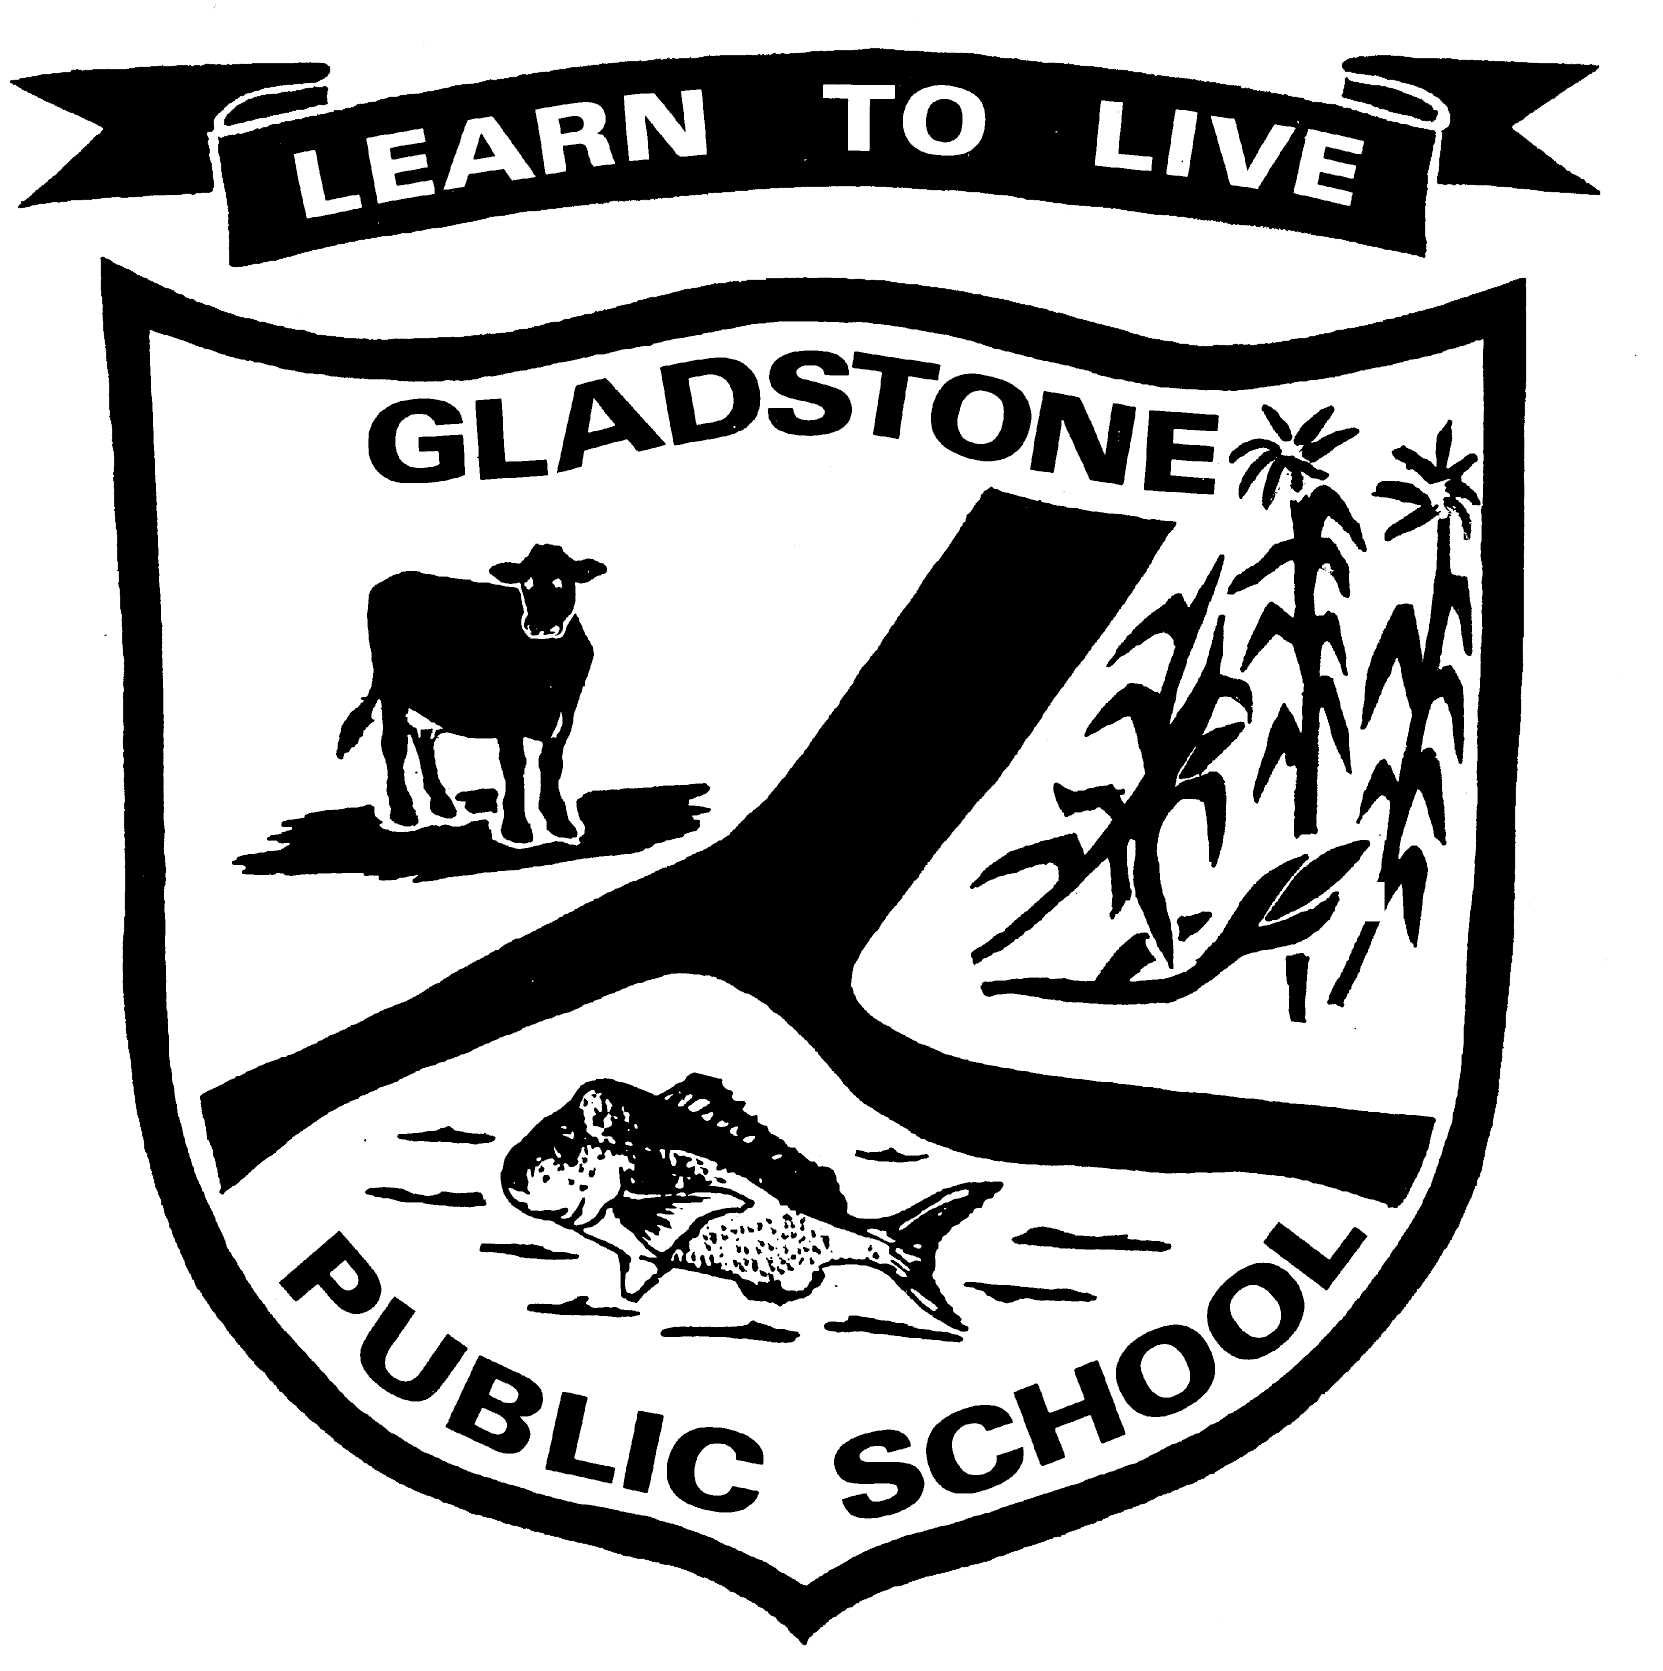 personal development, health and physical education - gladstone